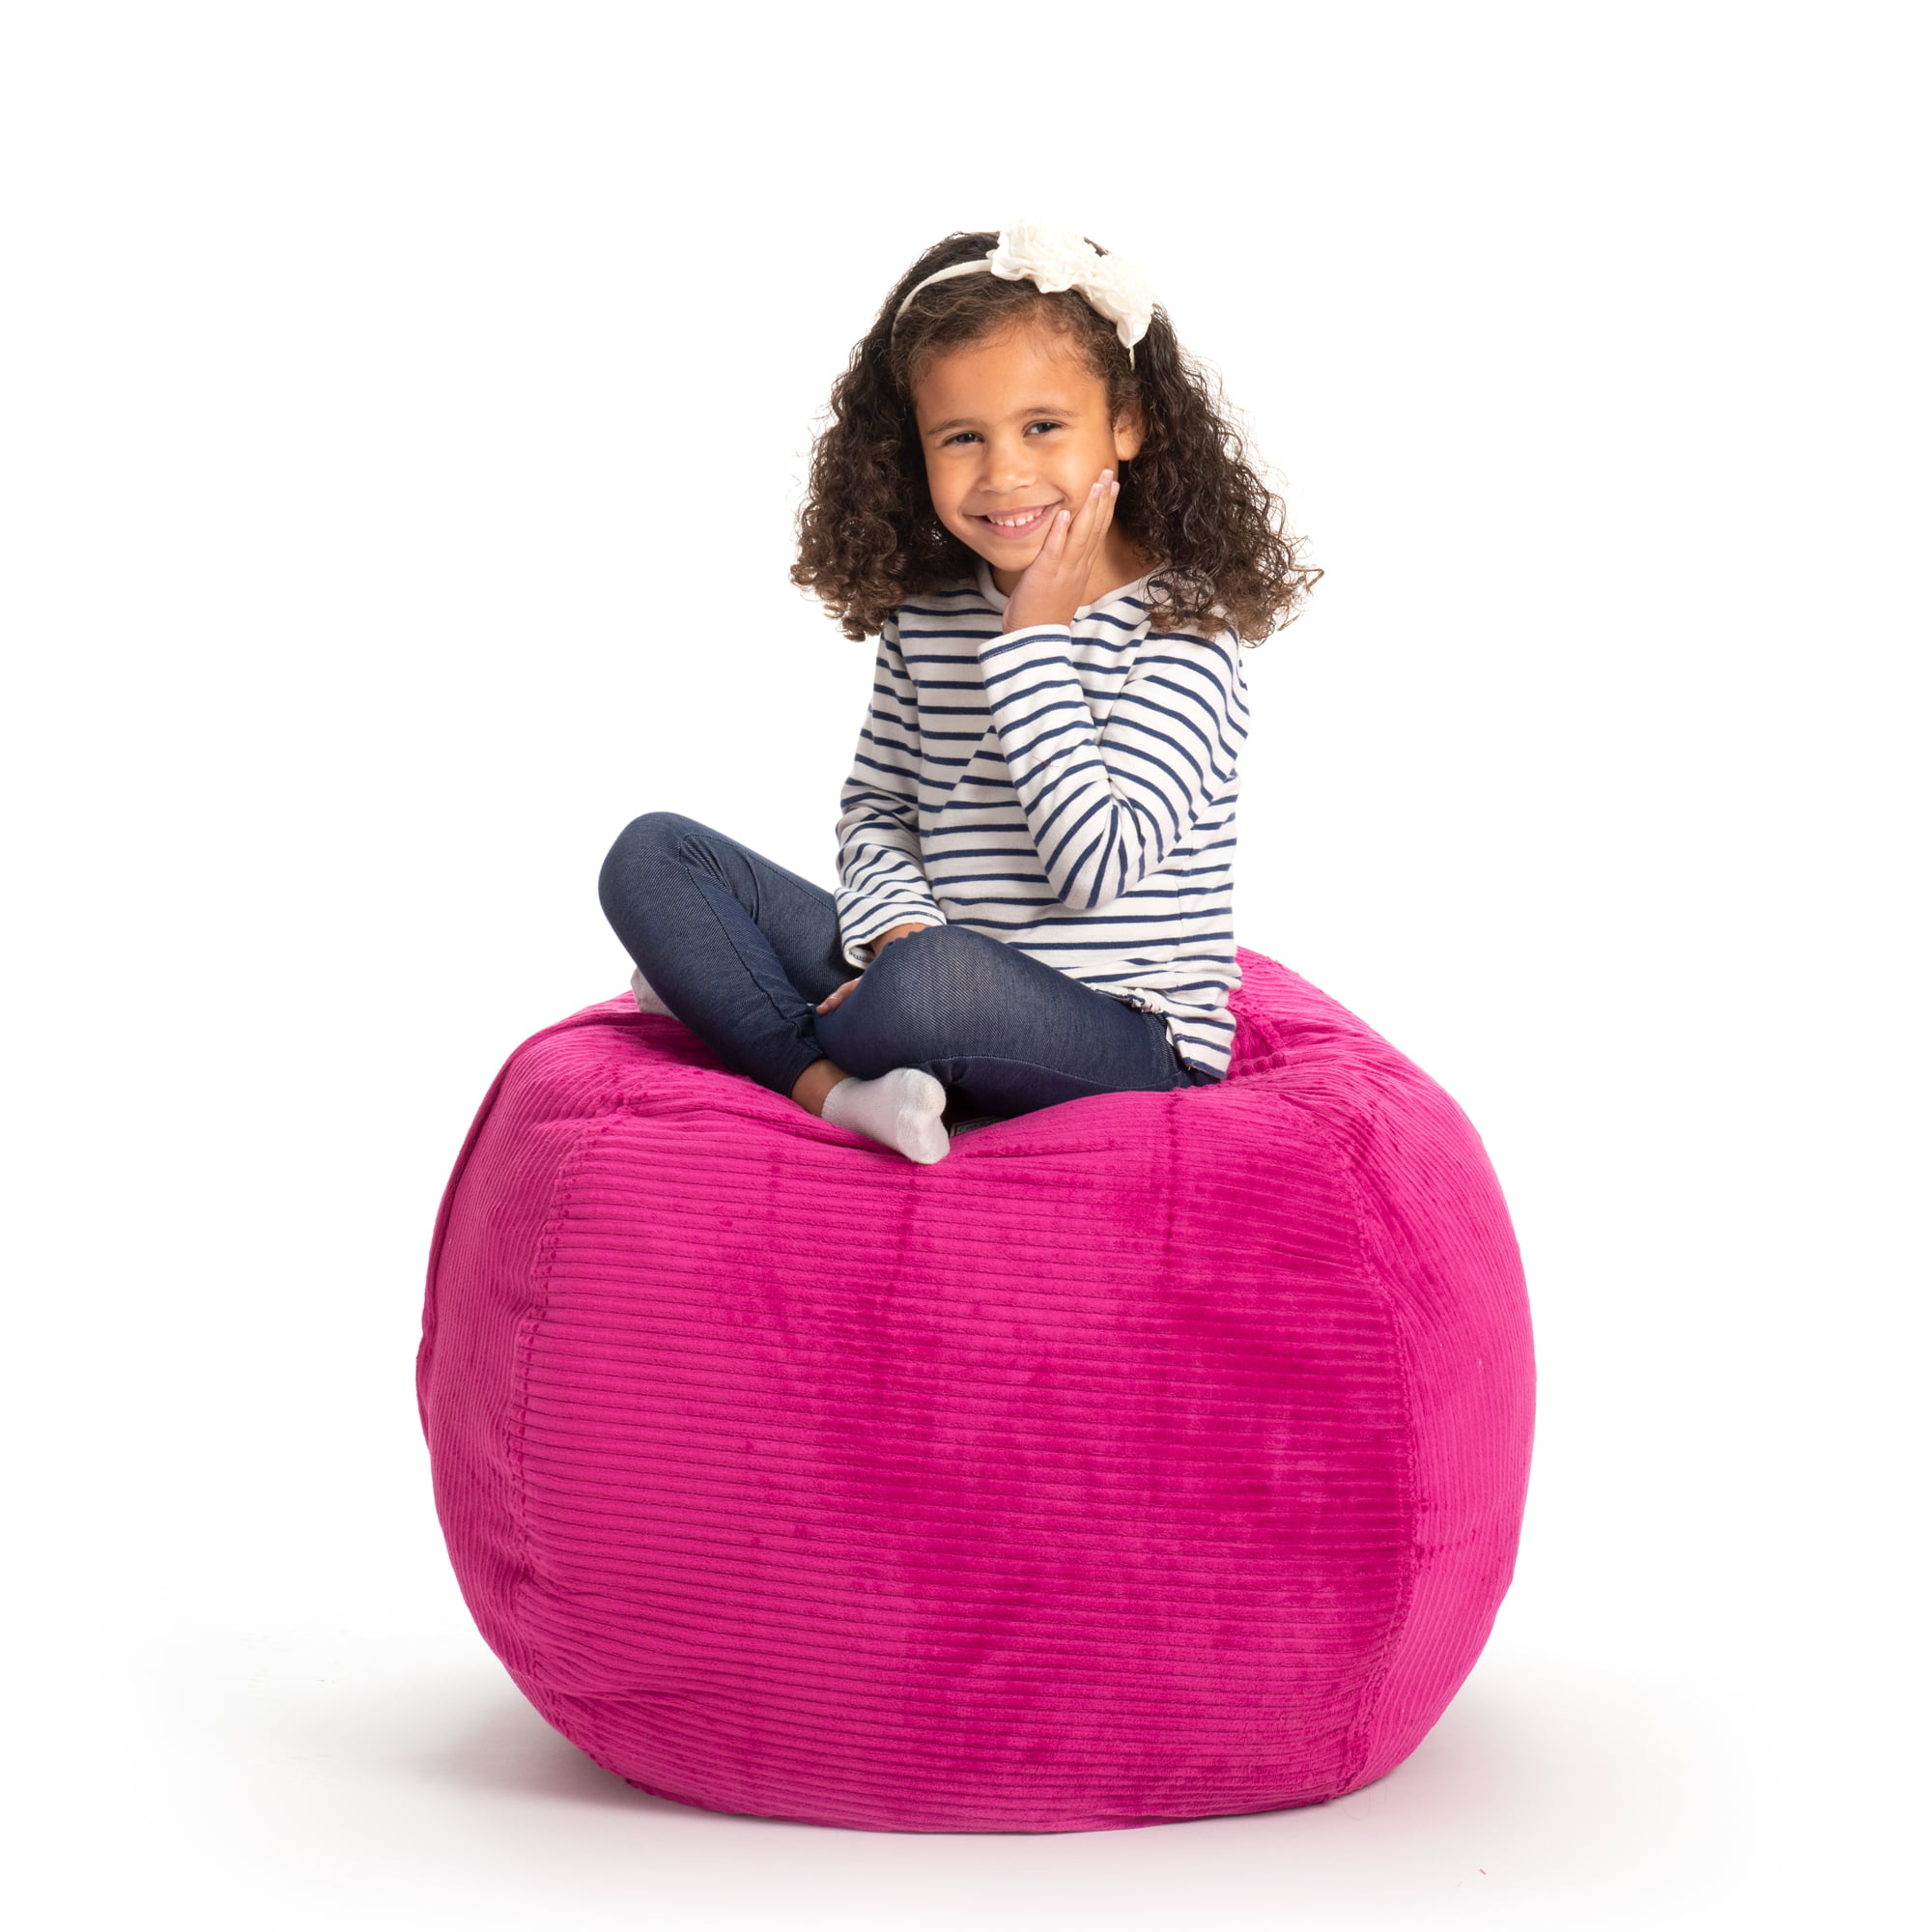 Comfortable Children Reading Bean Bag Chair Seating-Excellent Solution for Toys and Clothes Bean Bag for Kids Without Filler Large Ball Toy Bag Ideal Gift for Boys /& Girls